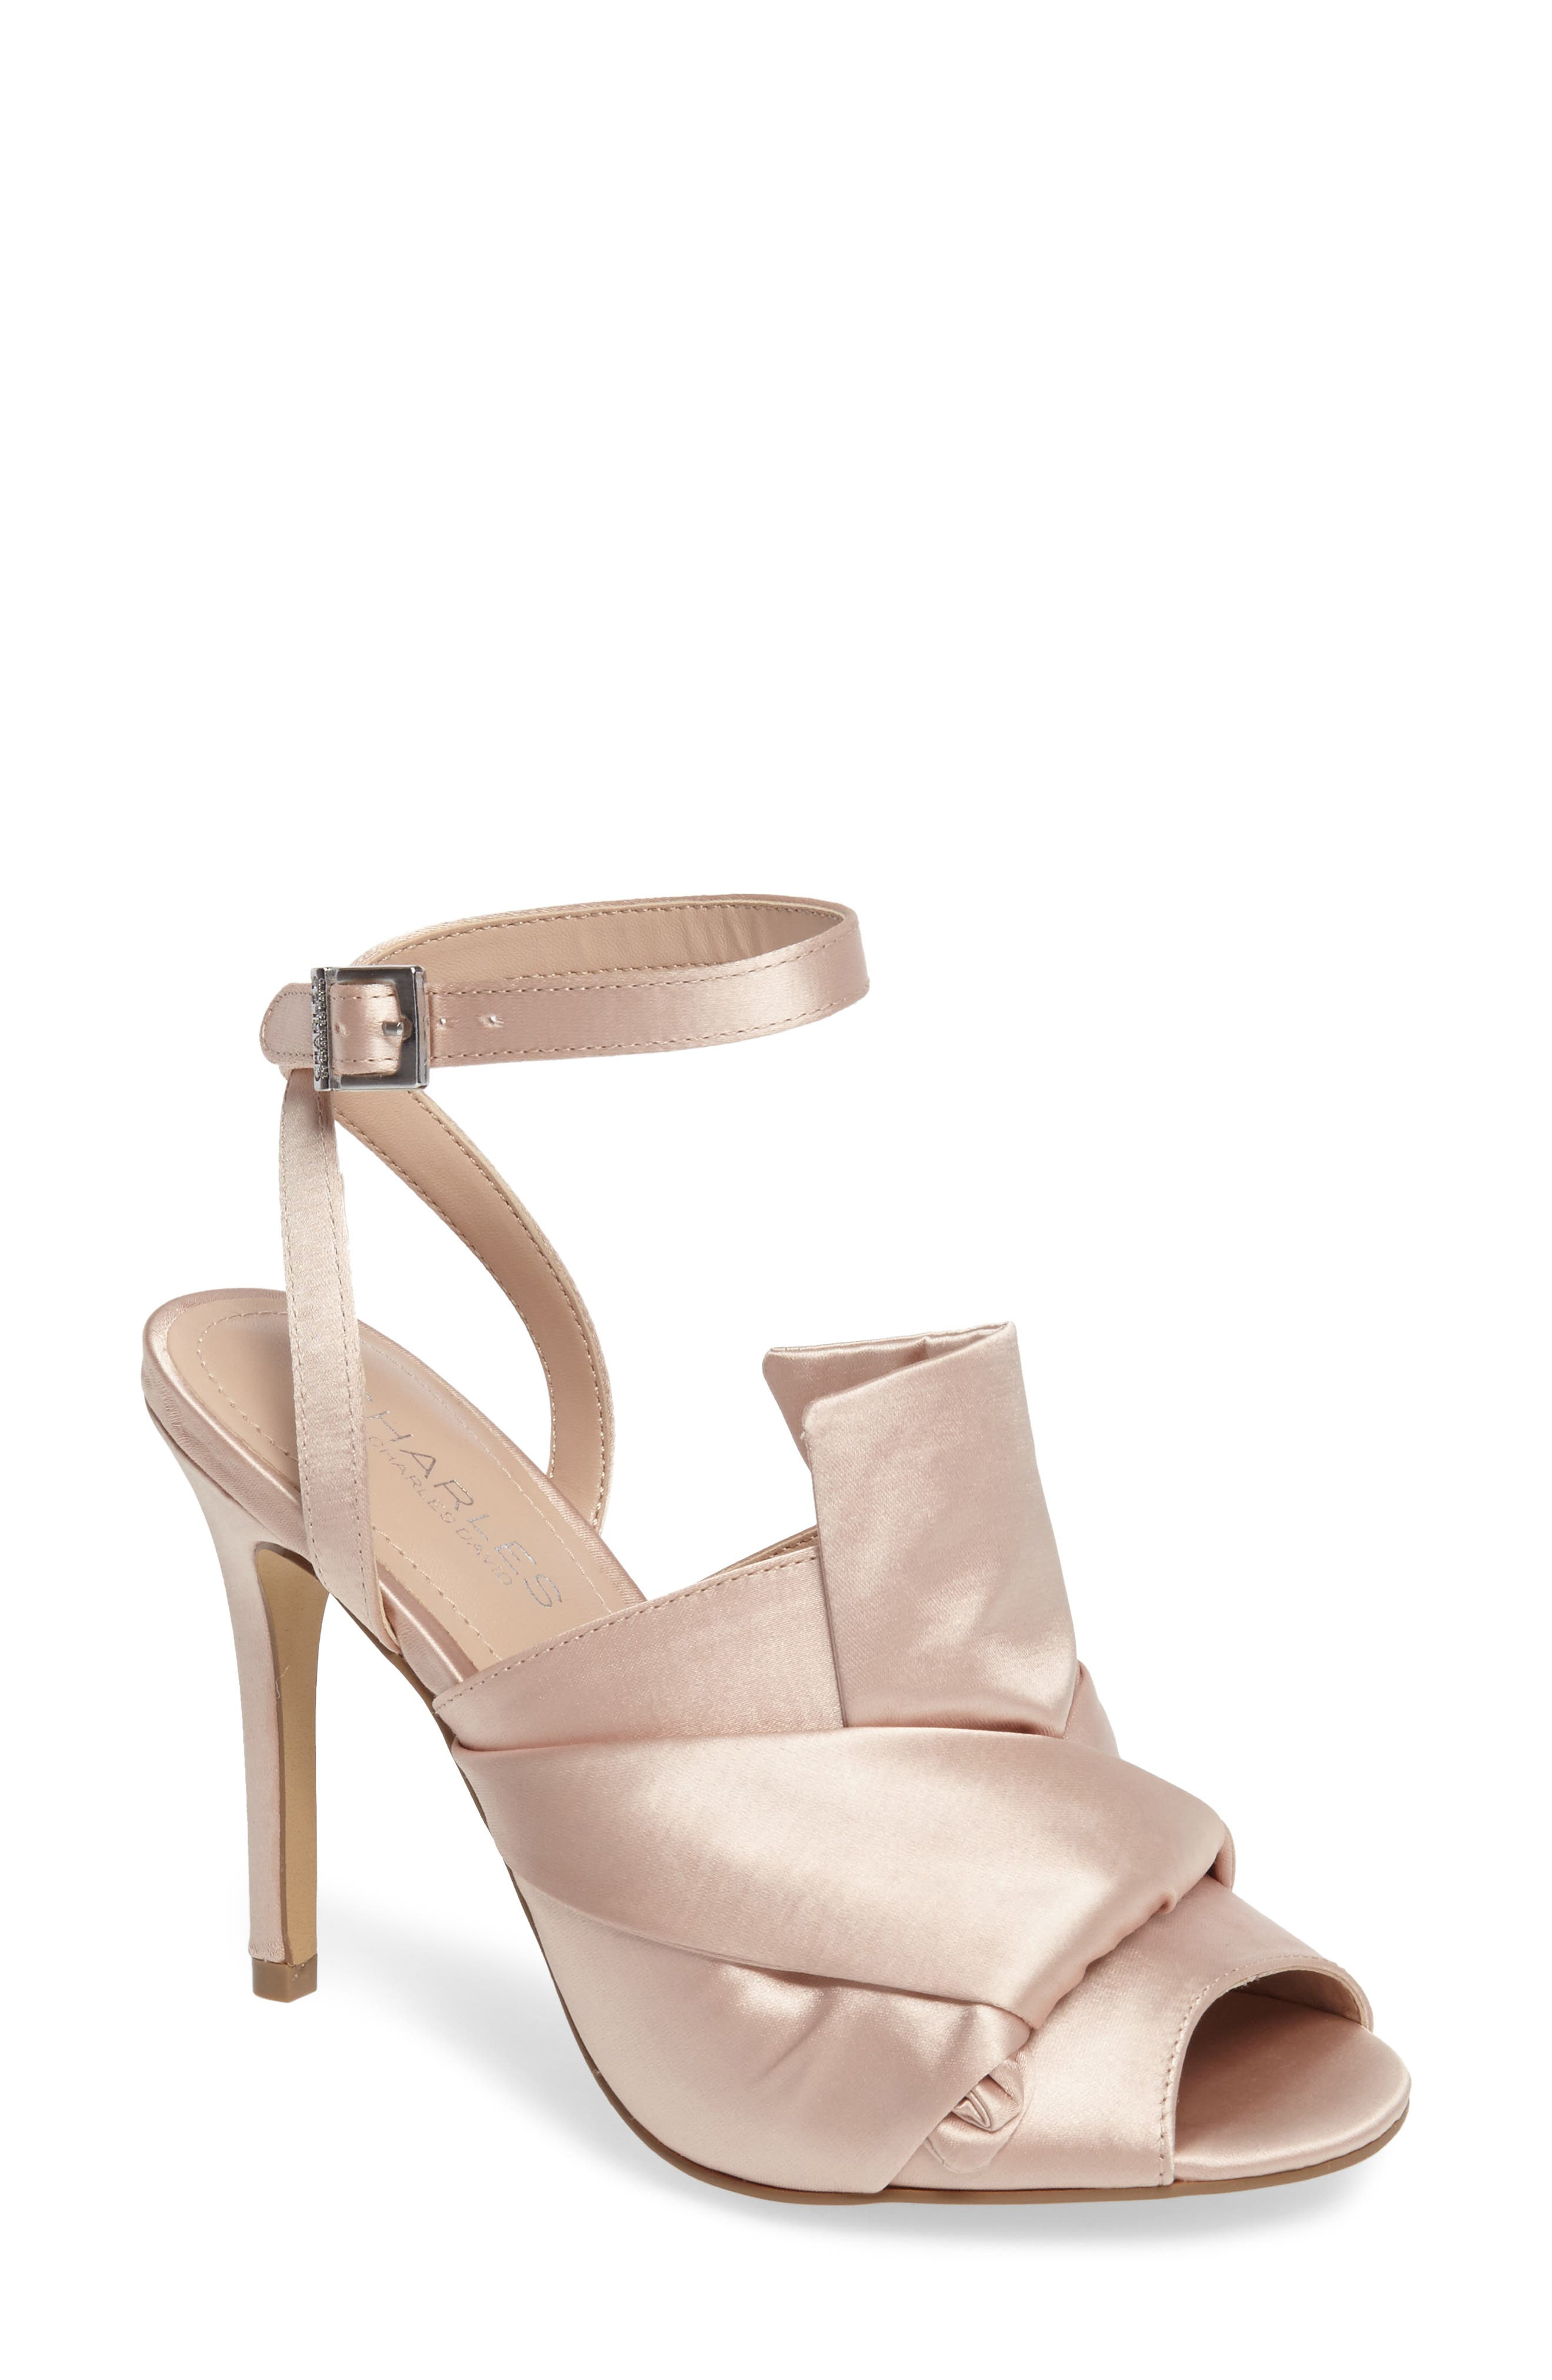 Alternate Image 1 Selected - Charles by Charles David Rachel Ankle Strap Sandal (Women)